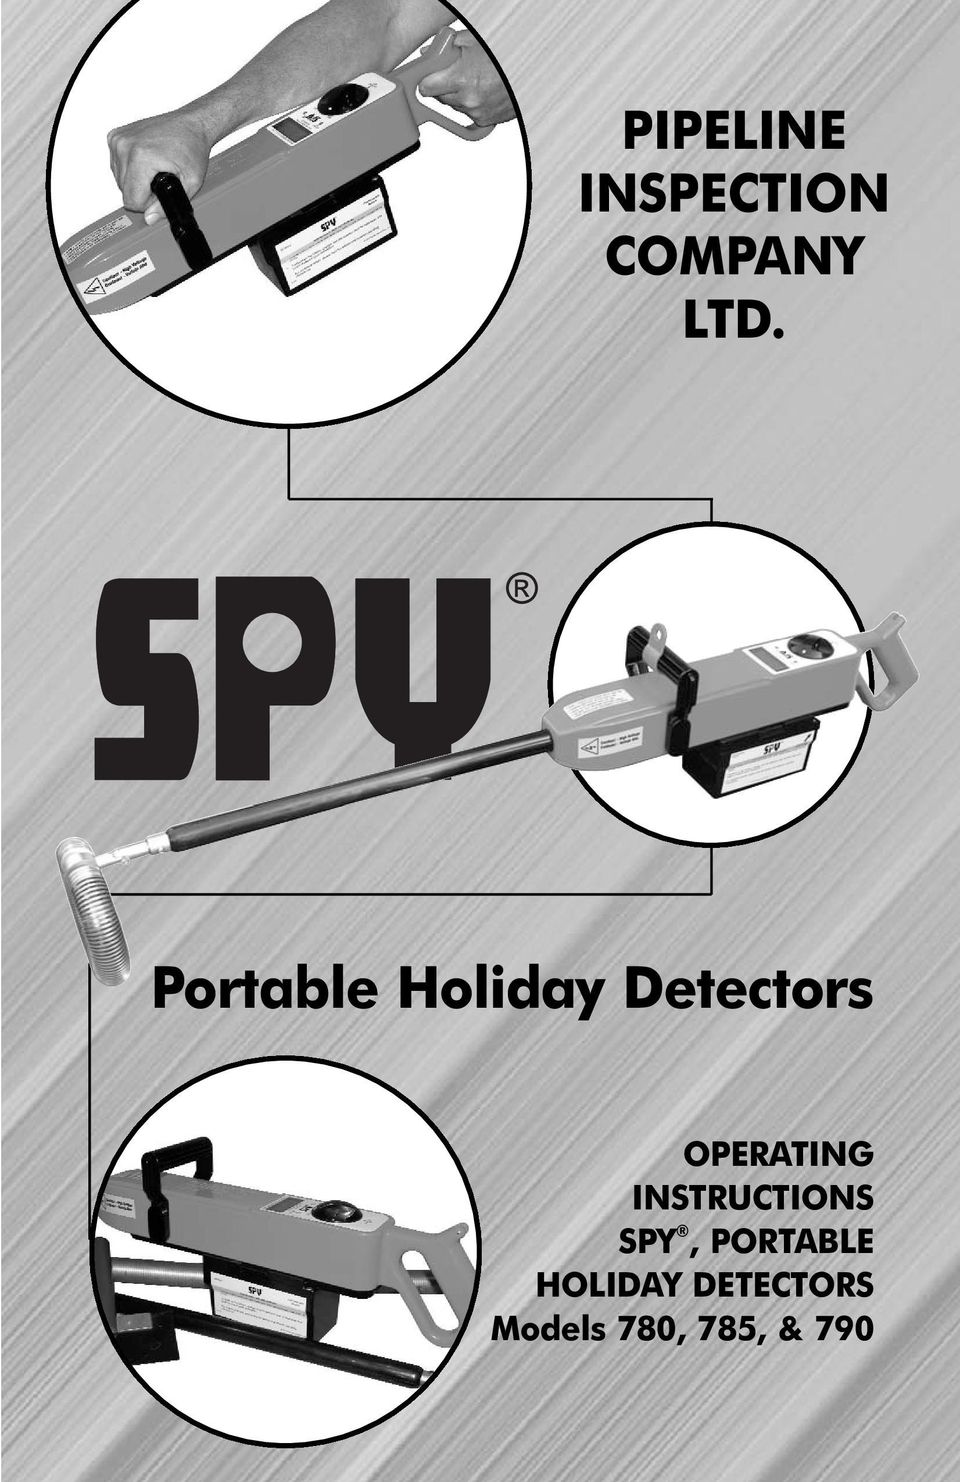 OPERATING INSTRUCTIONS SPY